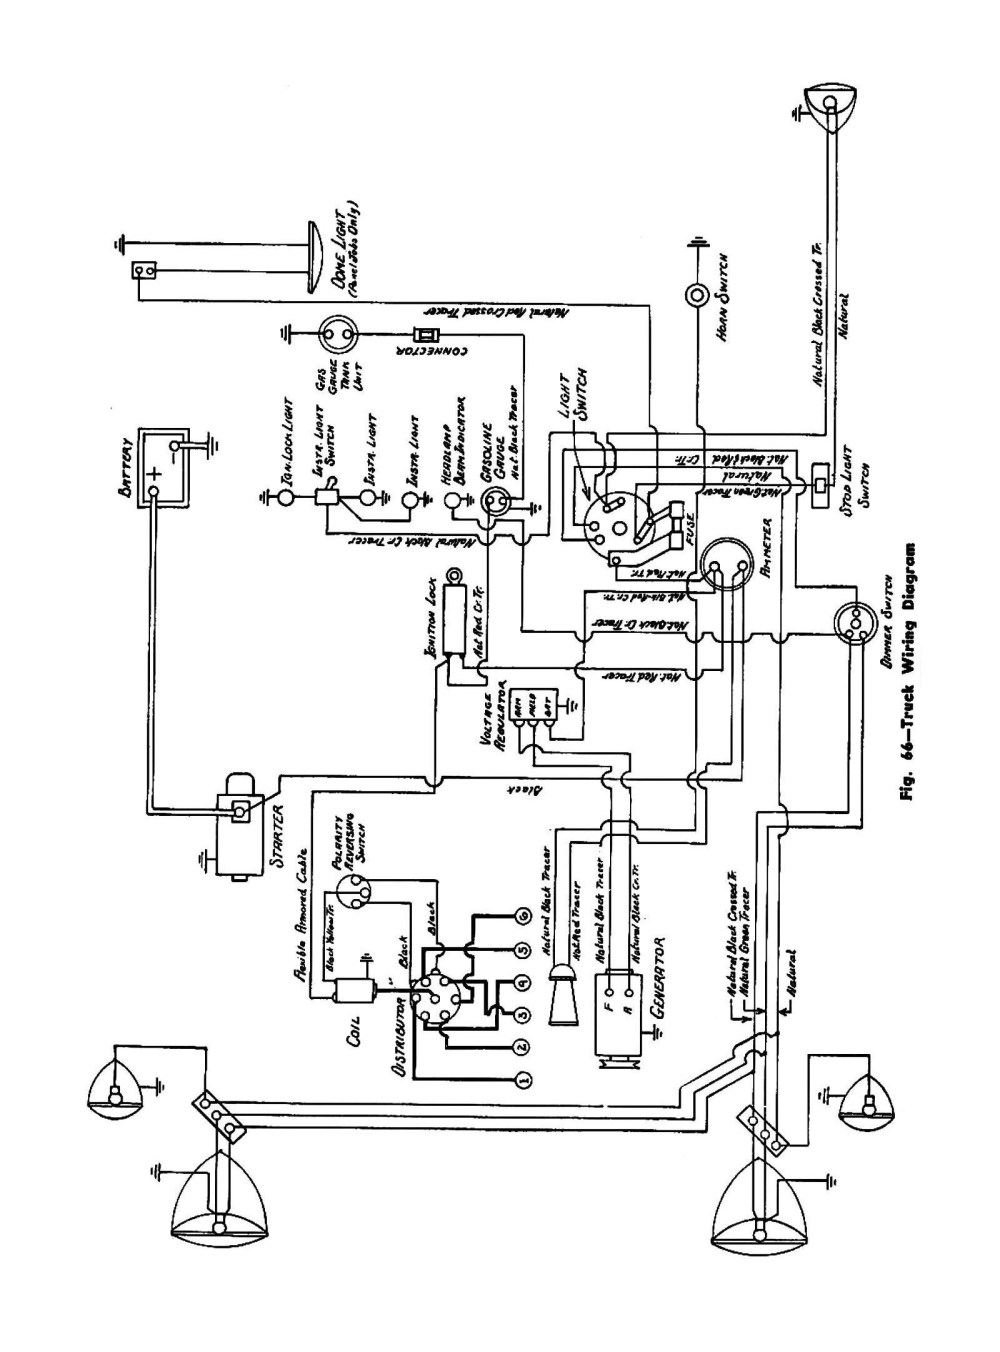 medium resolution of 1953 dodge wiring diagram wiring diagram yer 1953 dodge truck wiring diagram 1952 dodge truck wiring